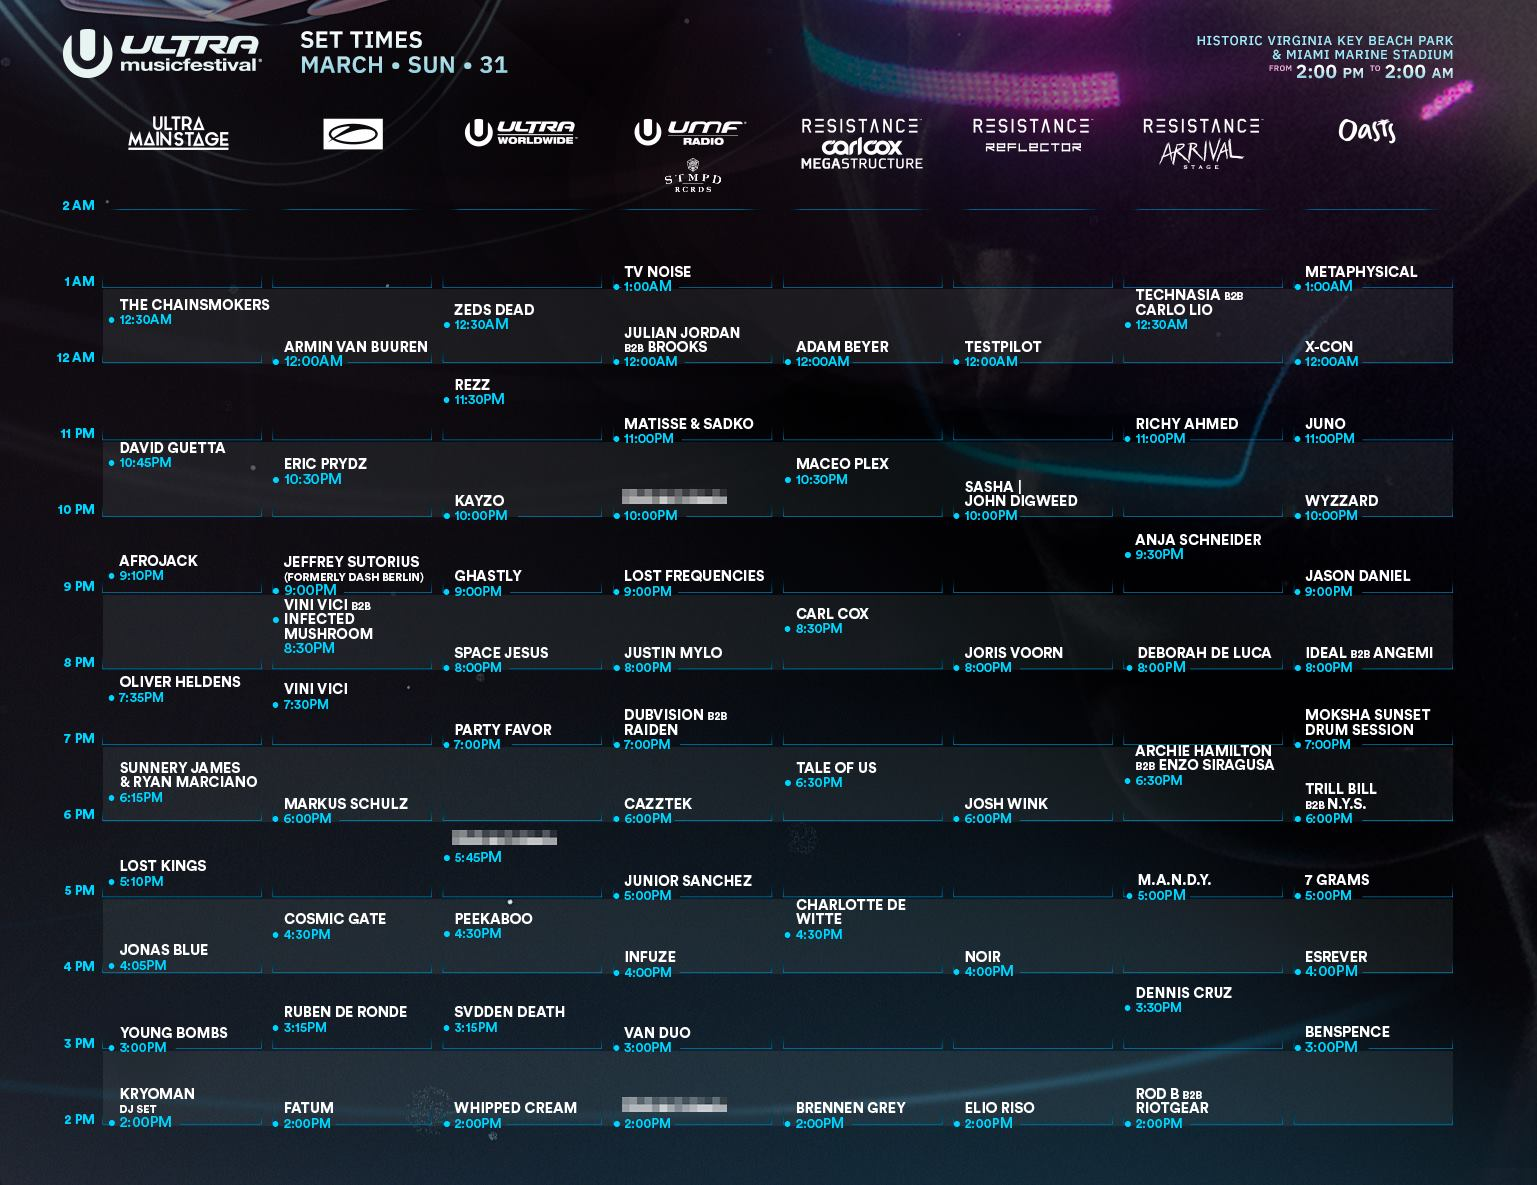 Ultra Music Festival 2019 Set Times, Festival Map, & More